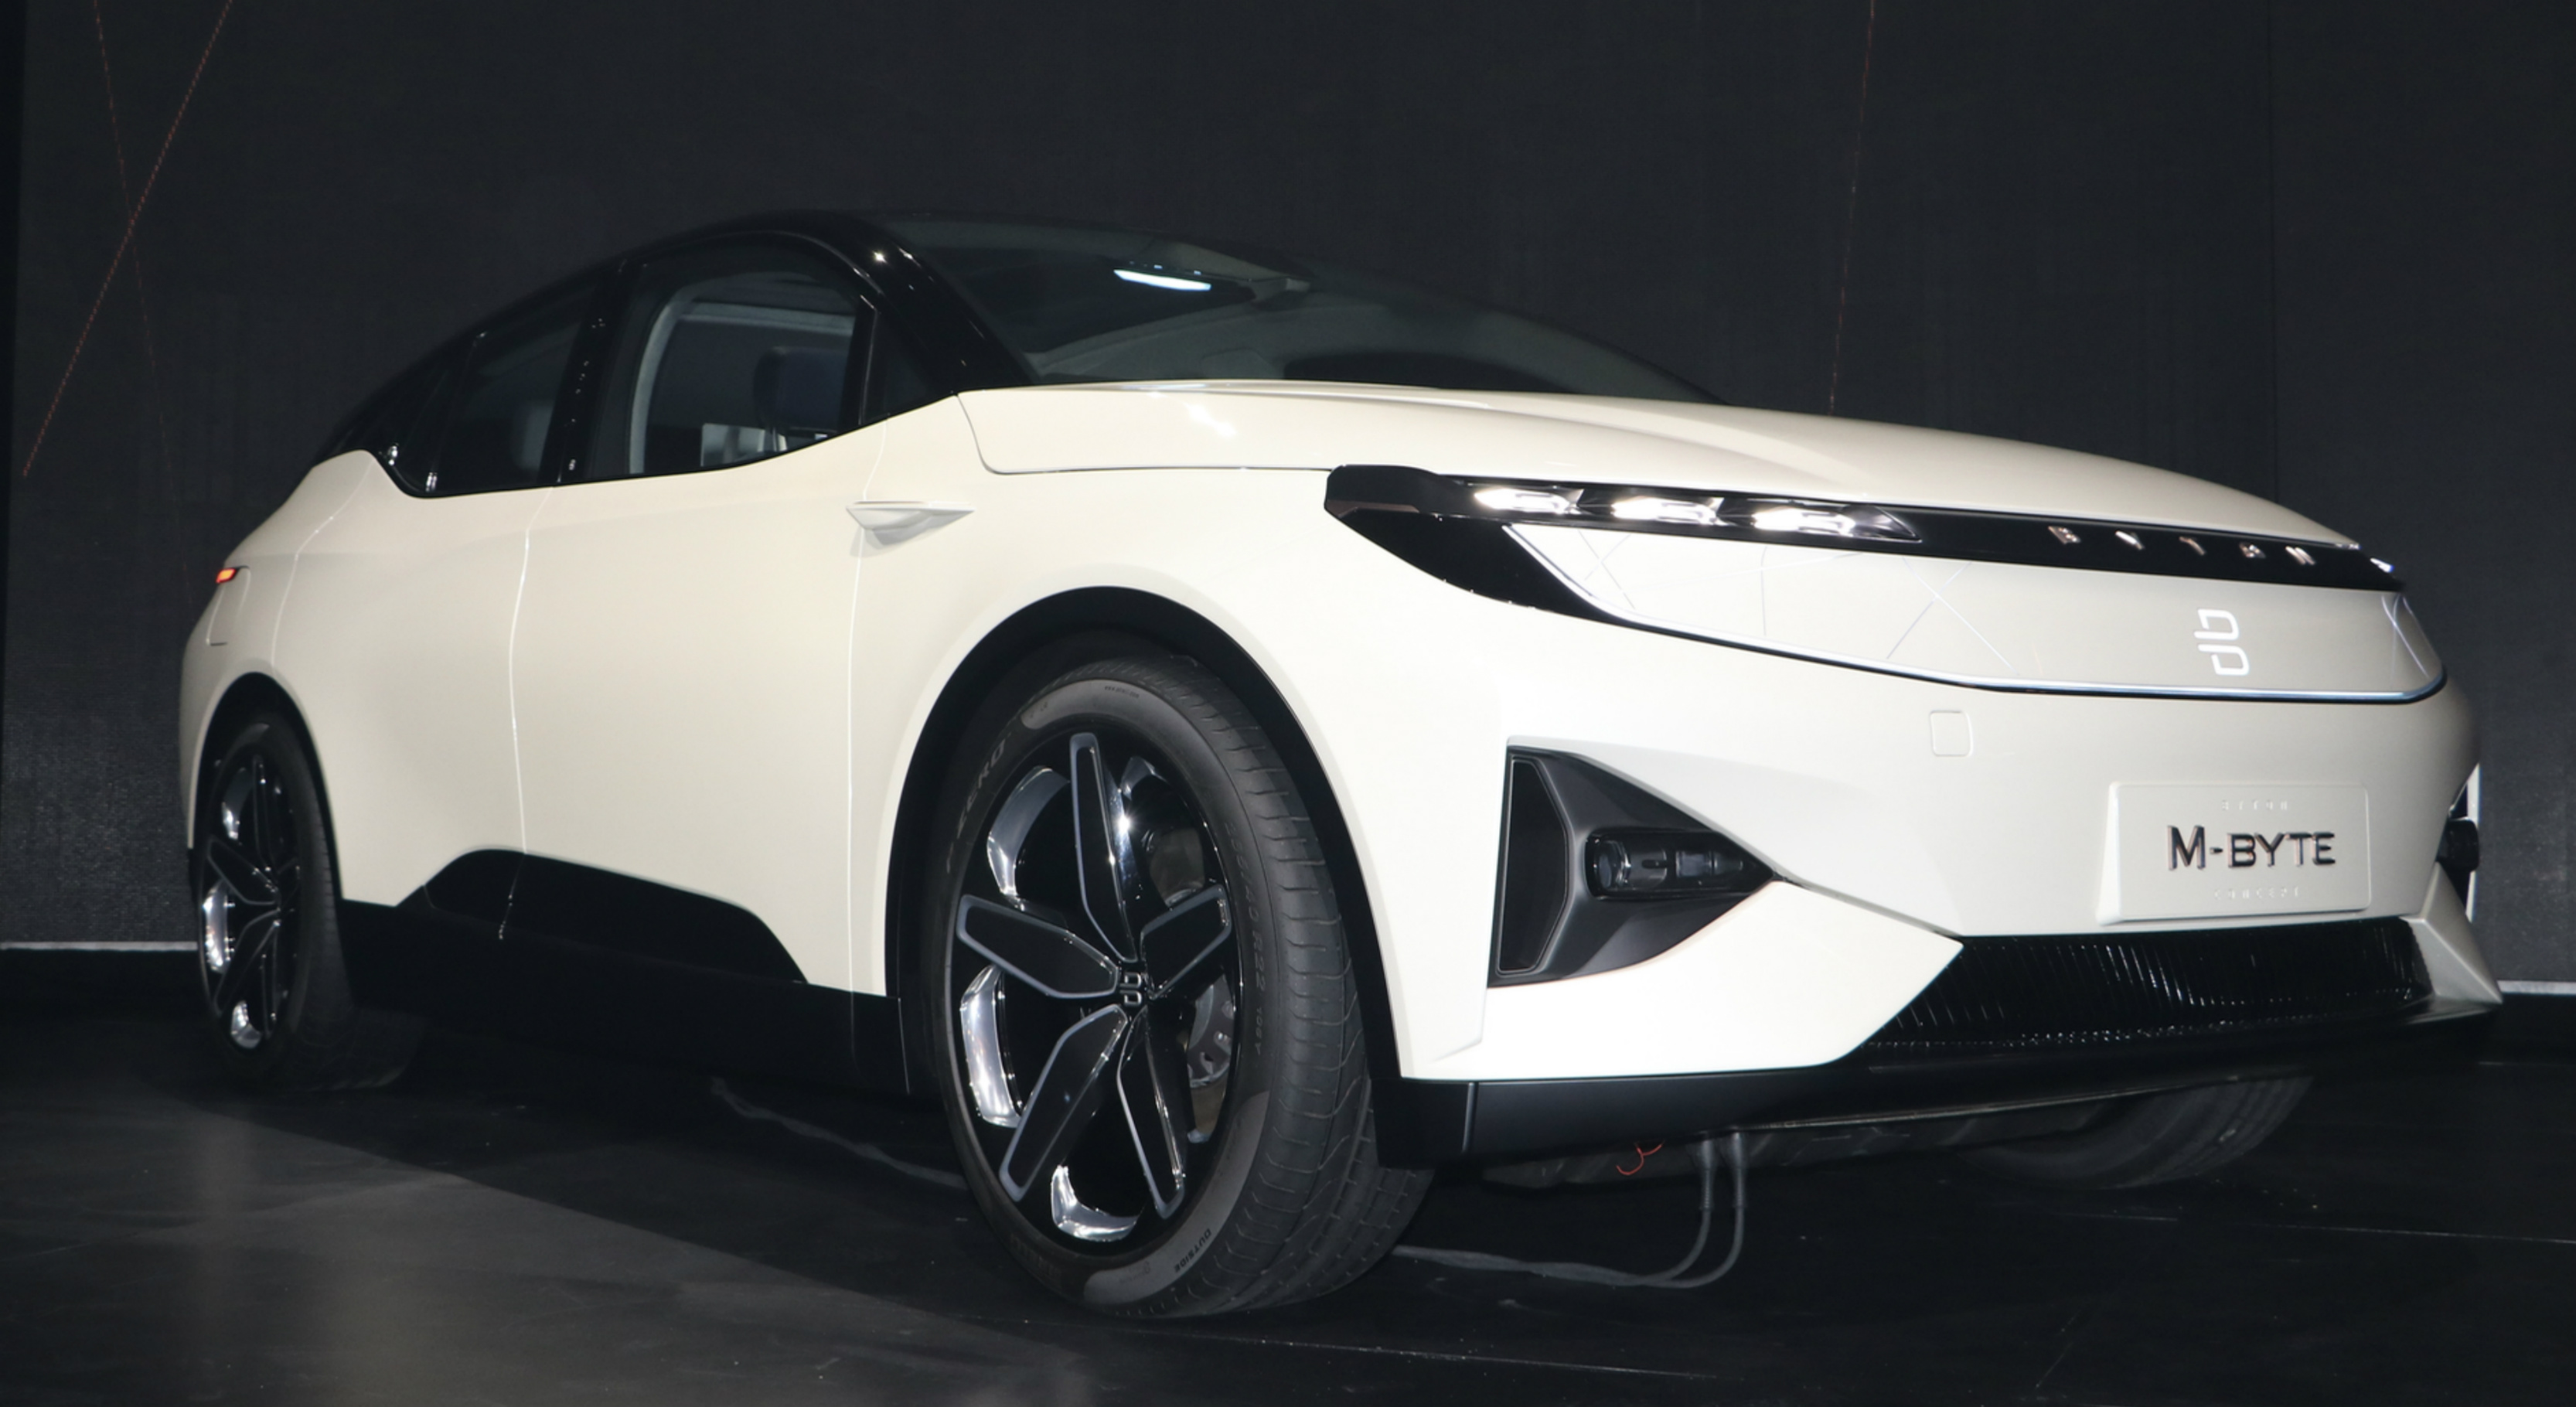 CES 2019: The New Byton is a Digital-First Car